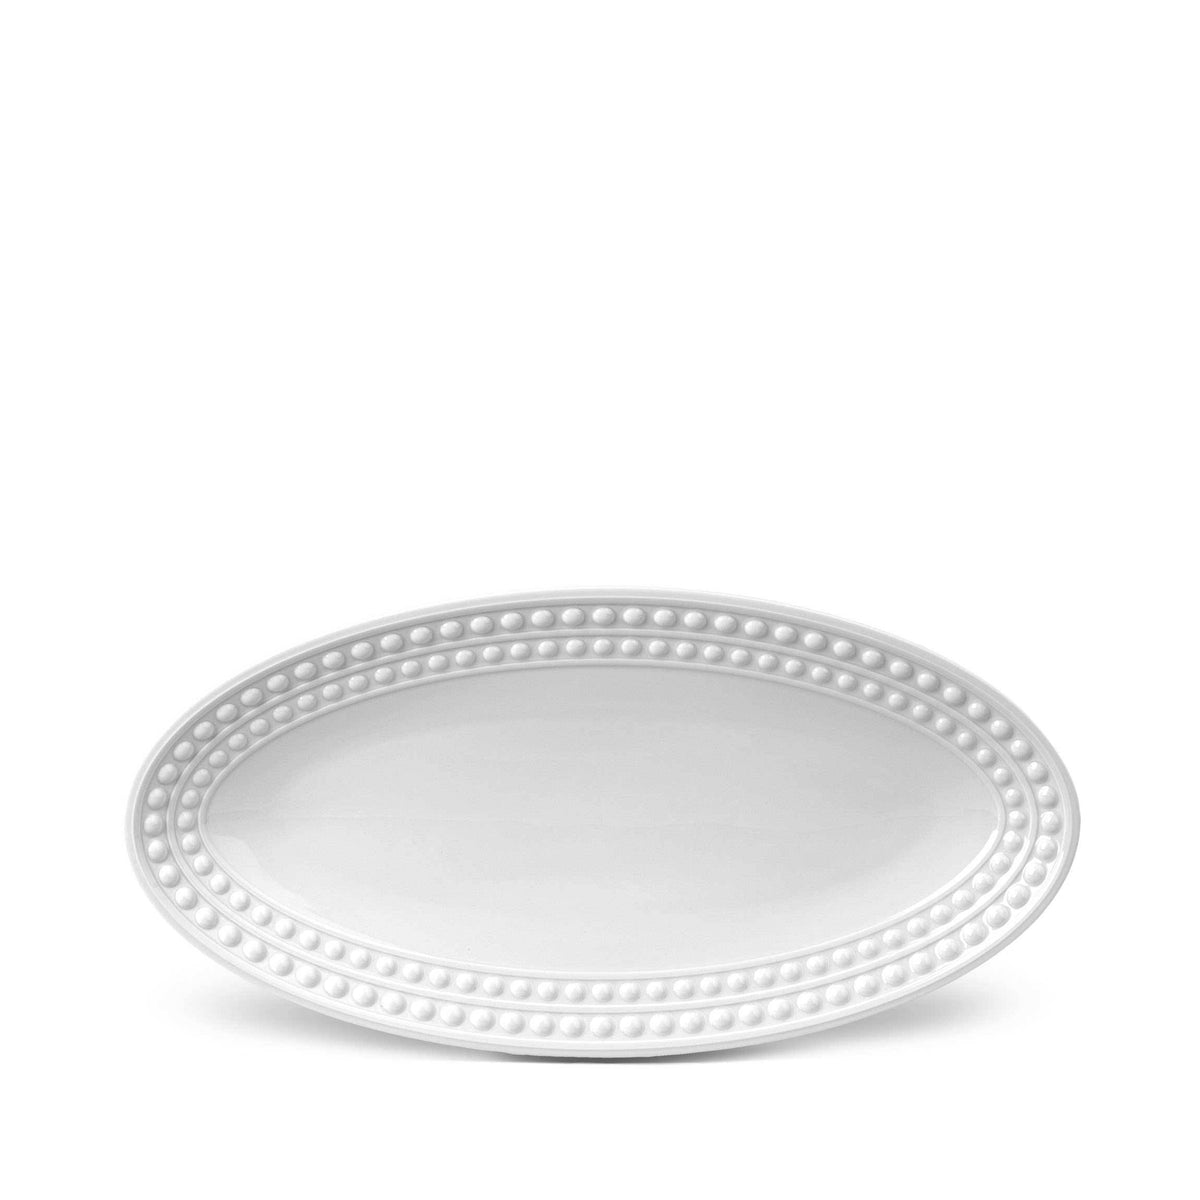 Perlee White Oval Platter Small